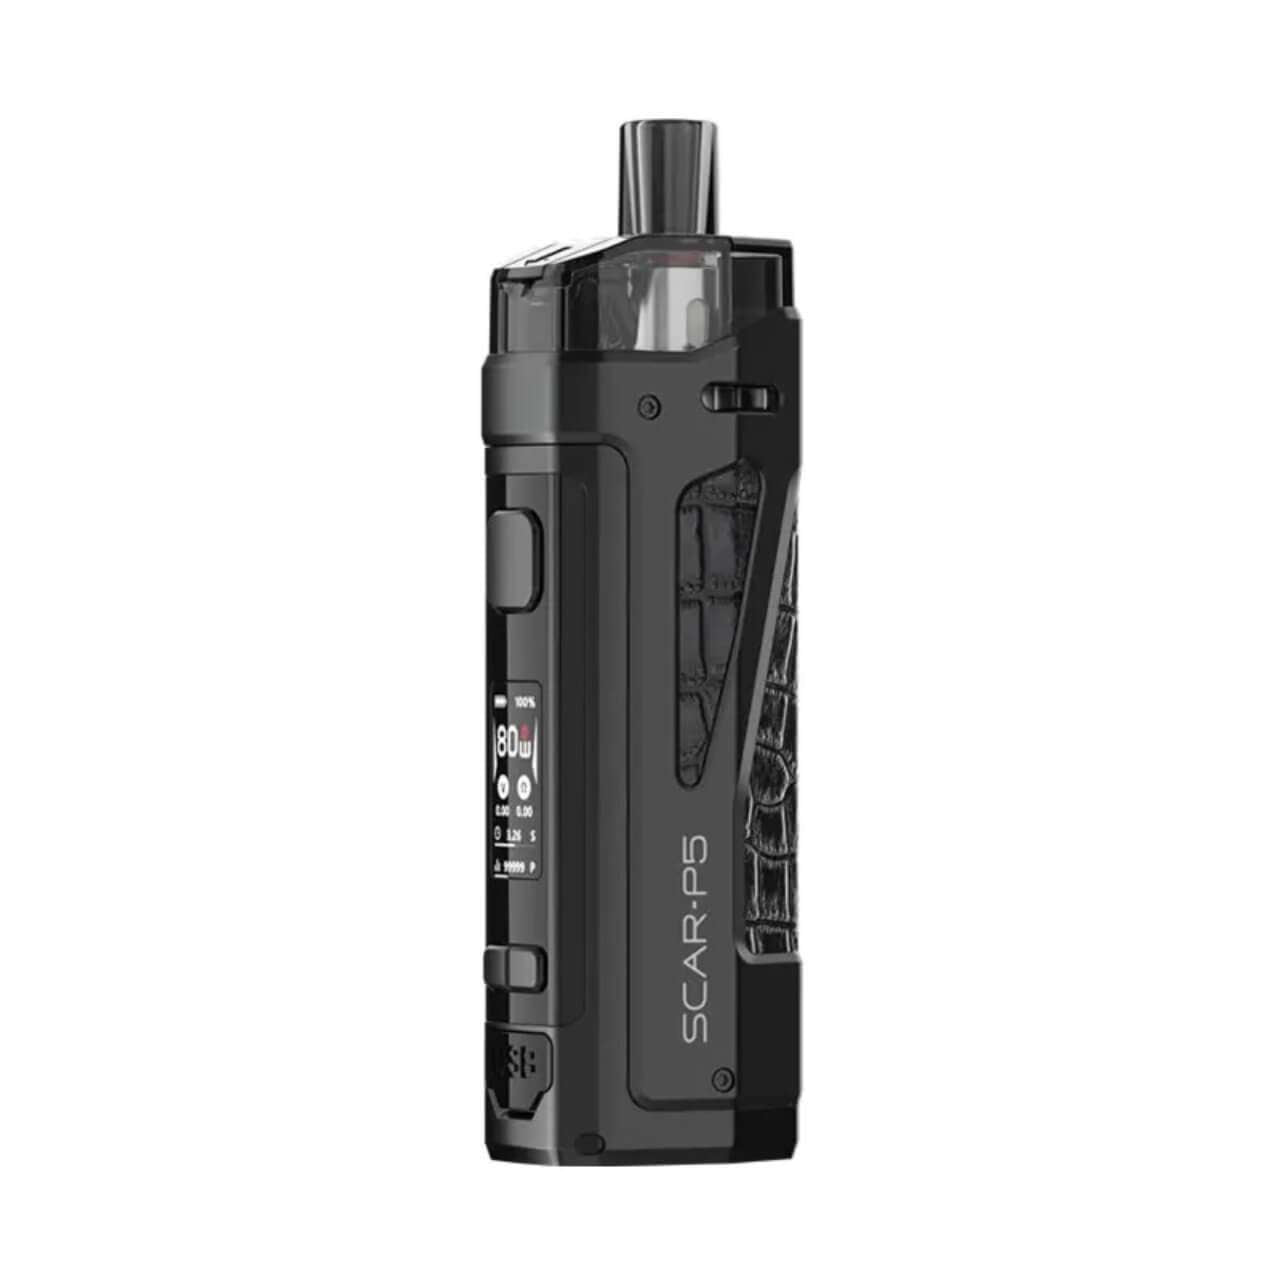 SMOK SCAR-P5 18650 Starter Kit With 2 x 5ML Refillable RPM Pods - BLV Delivery